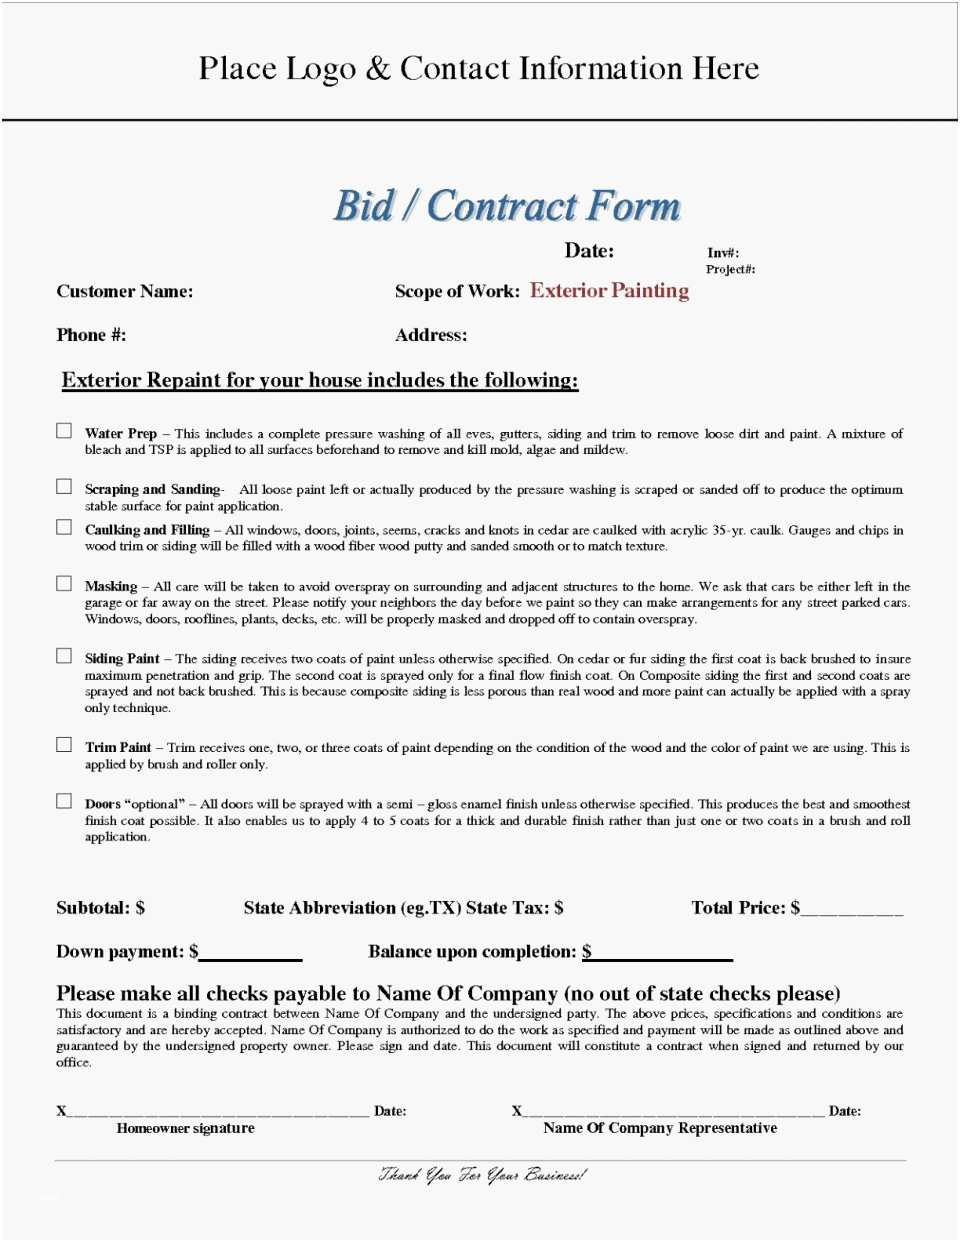 Nj Home Improvement Contract Template Awesome Home Improvement Contract Form